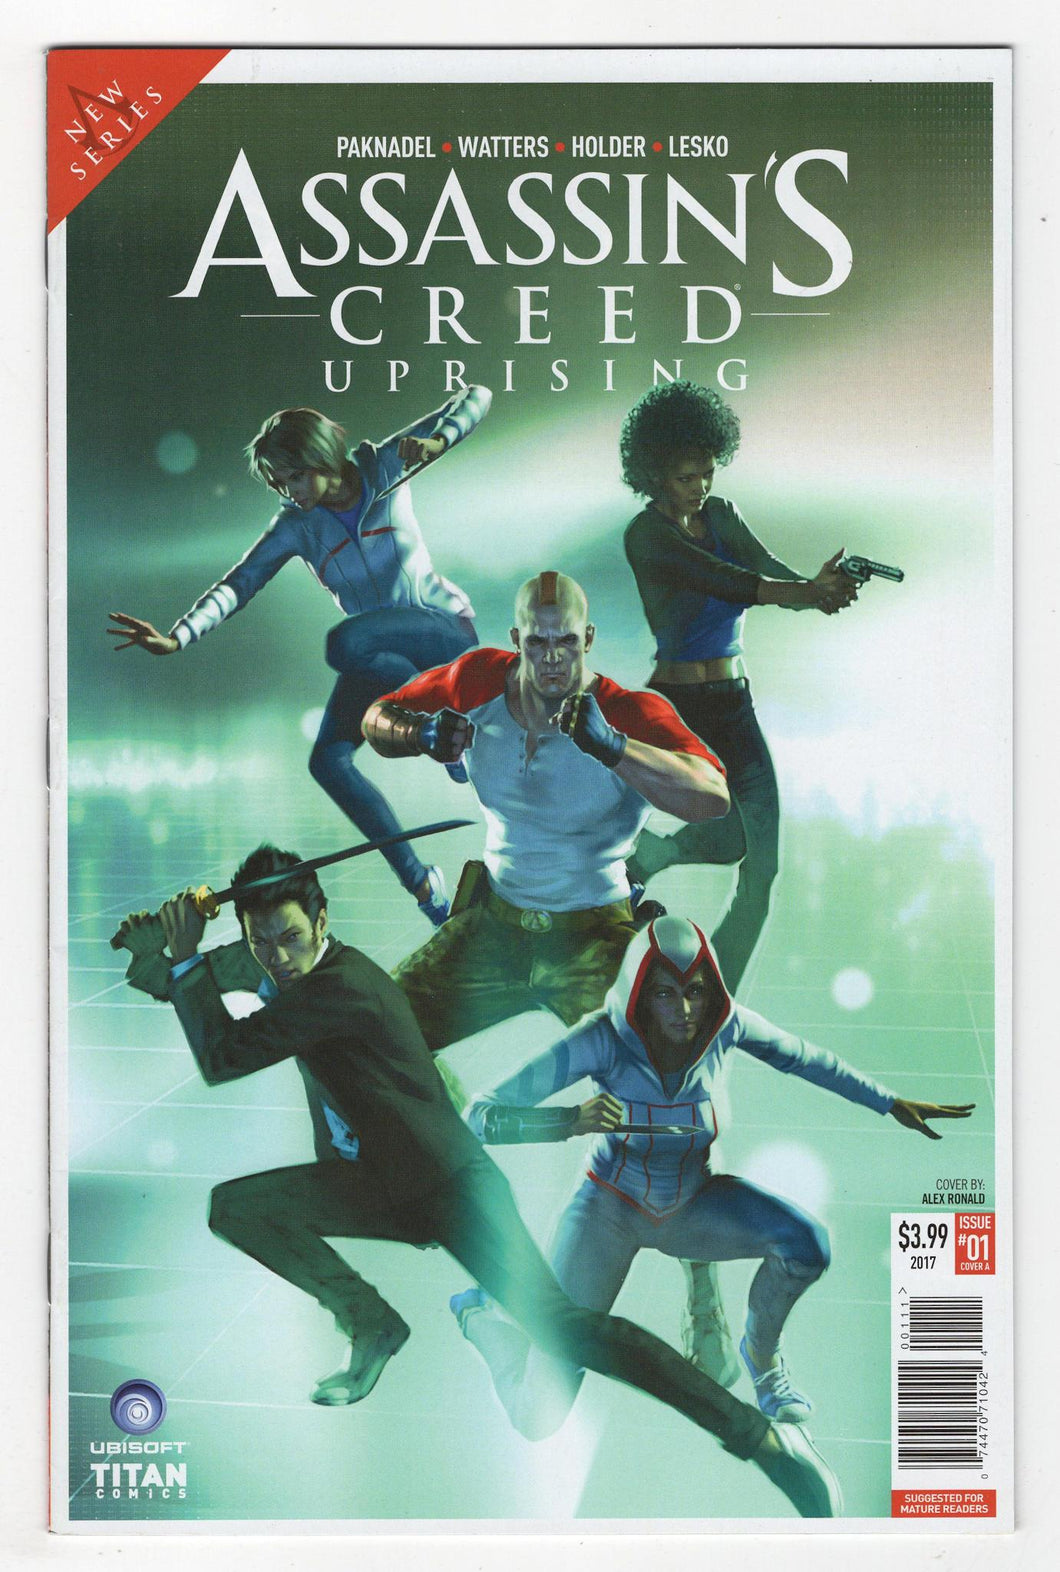 Assassins Creed Uprising #1 Cover Front